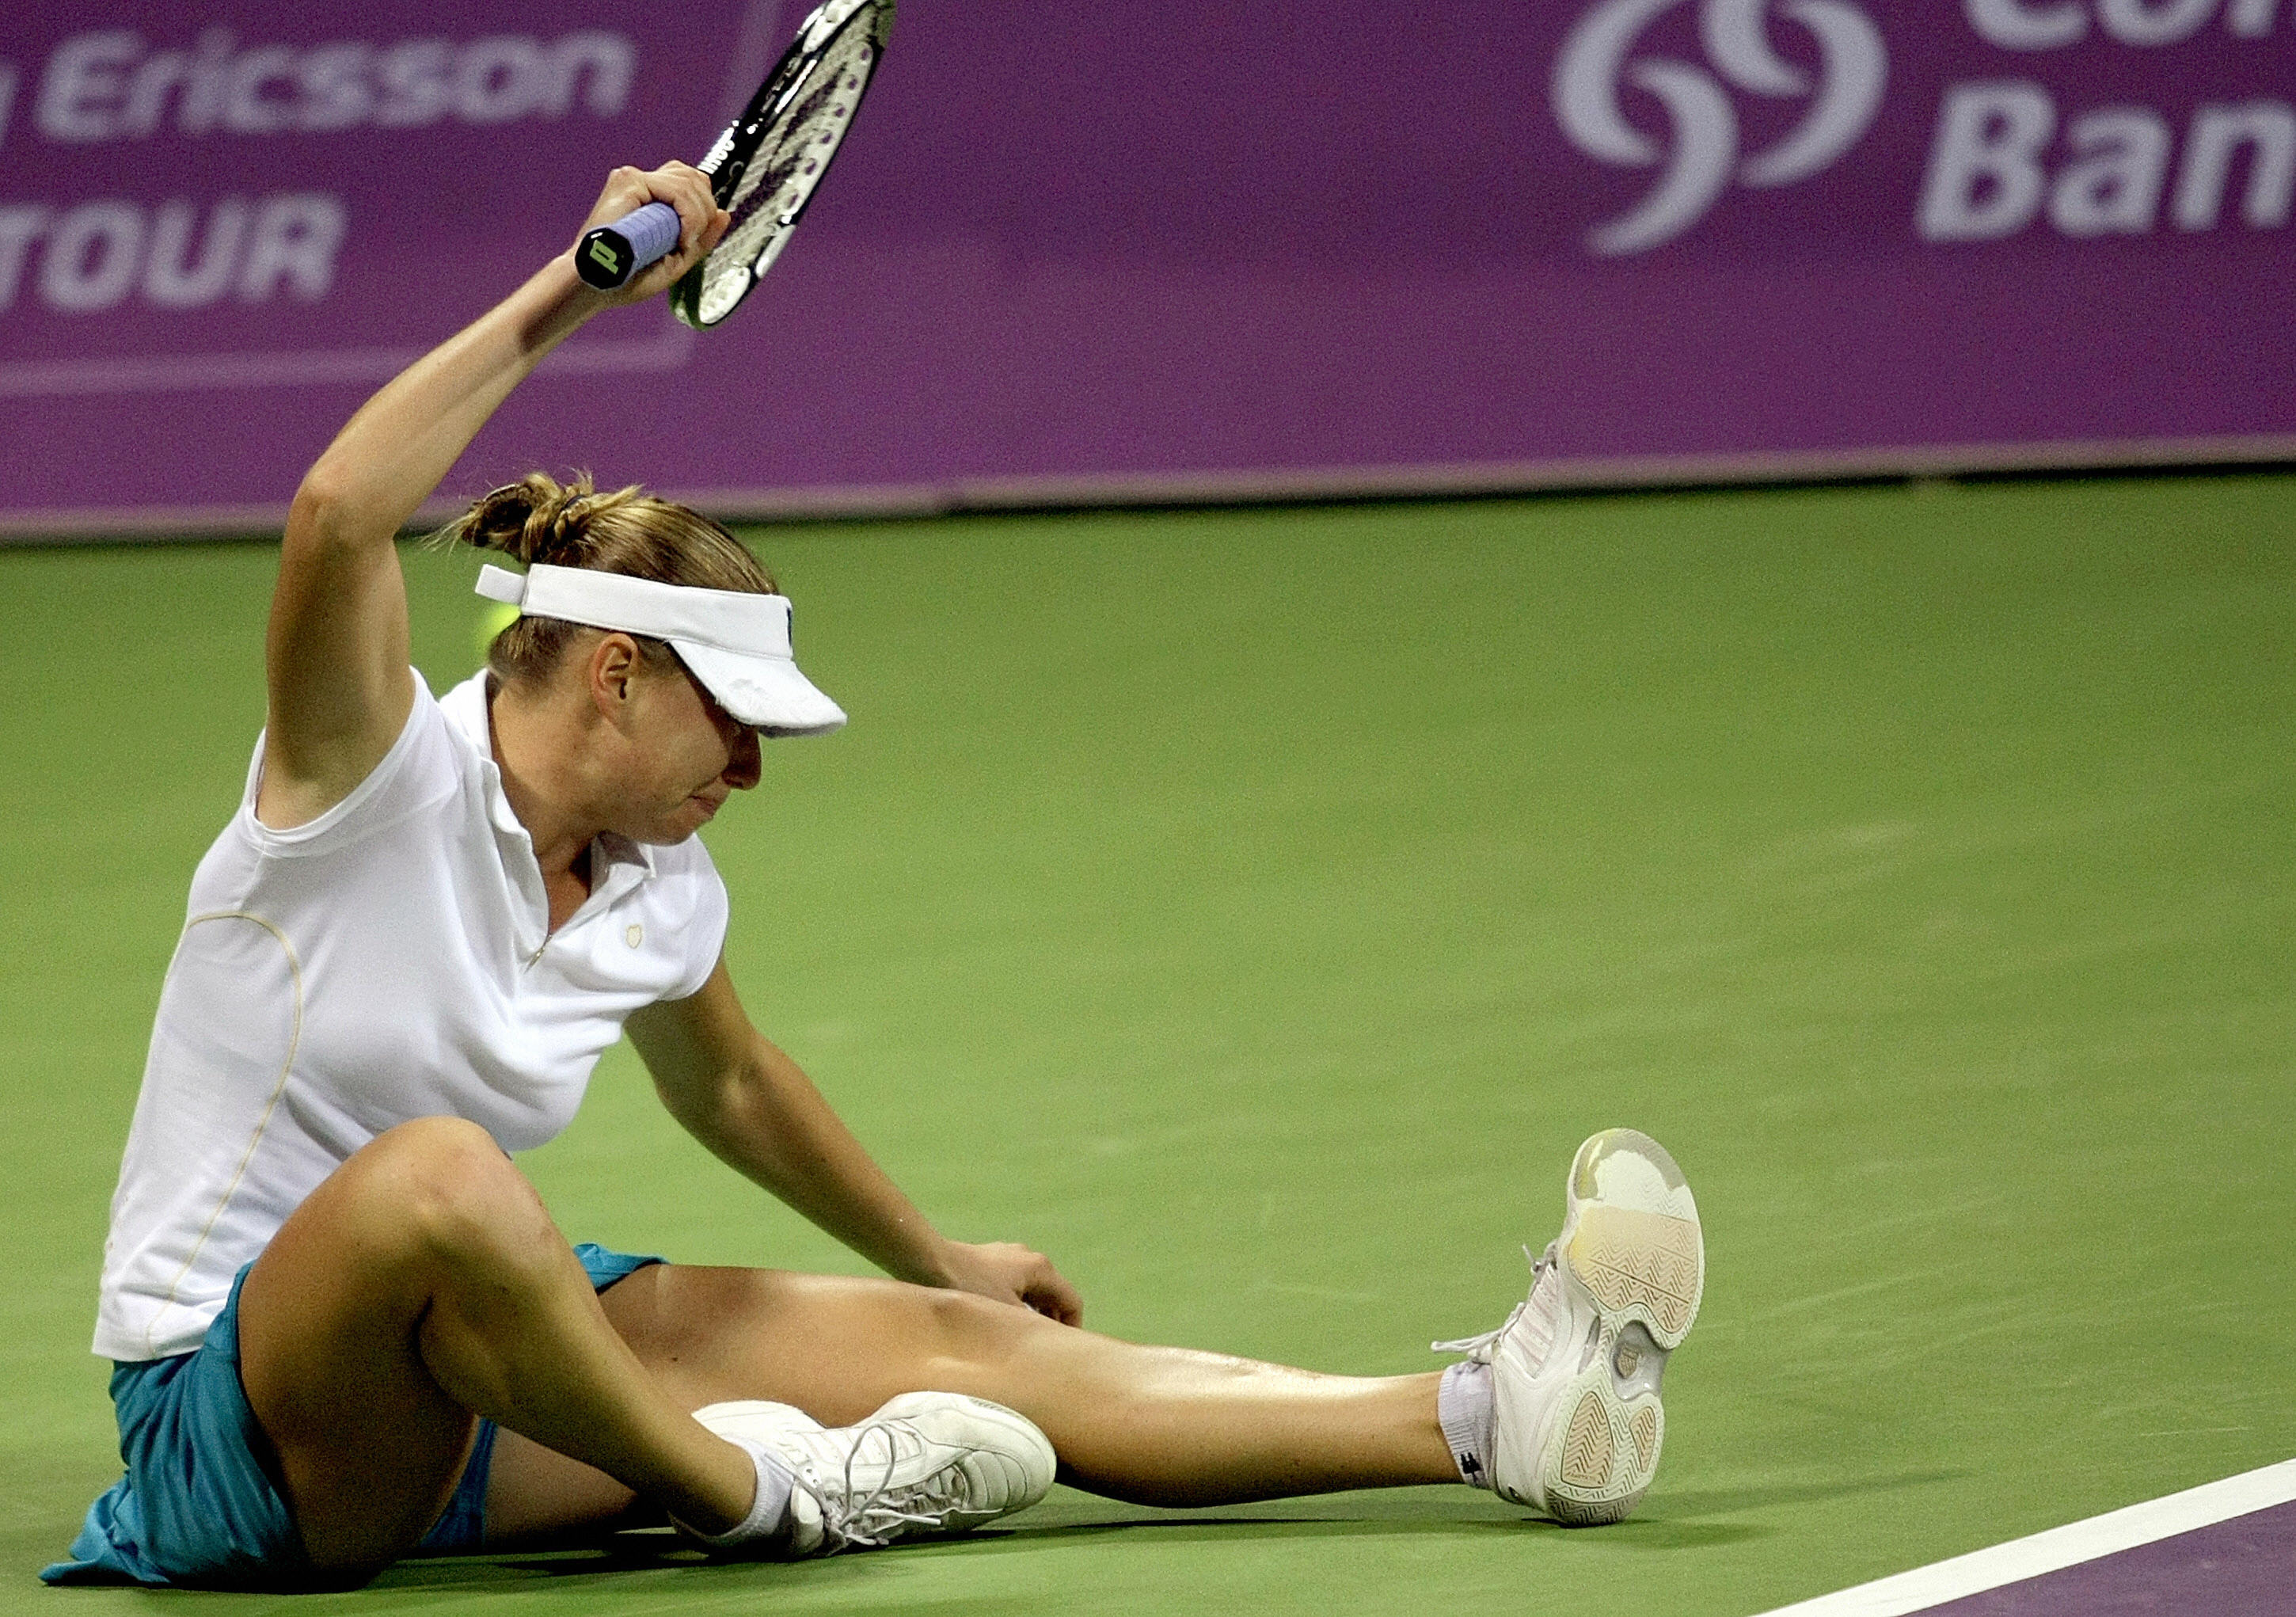 The always combustible Vera Zvonareva made the final, but lost to Venus Williams 6-7 (5), 6-0, 6-2.